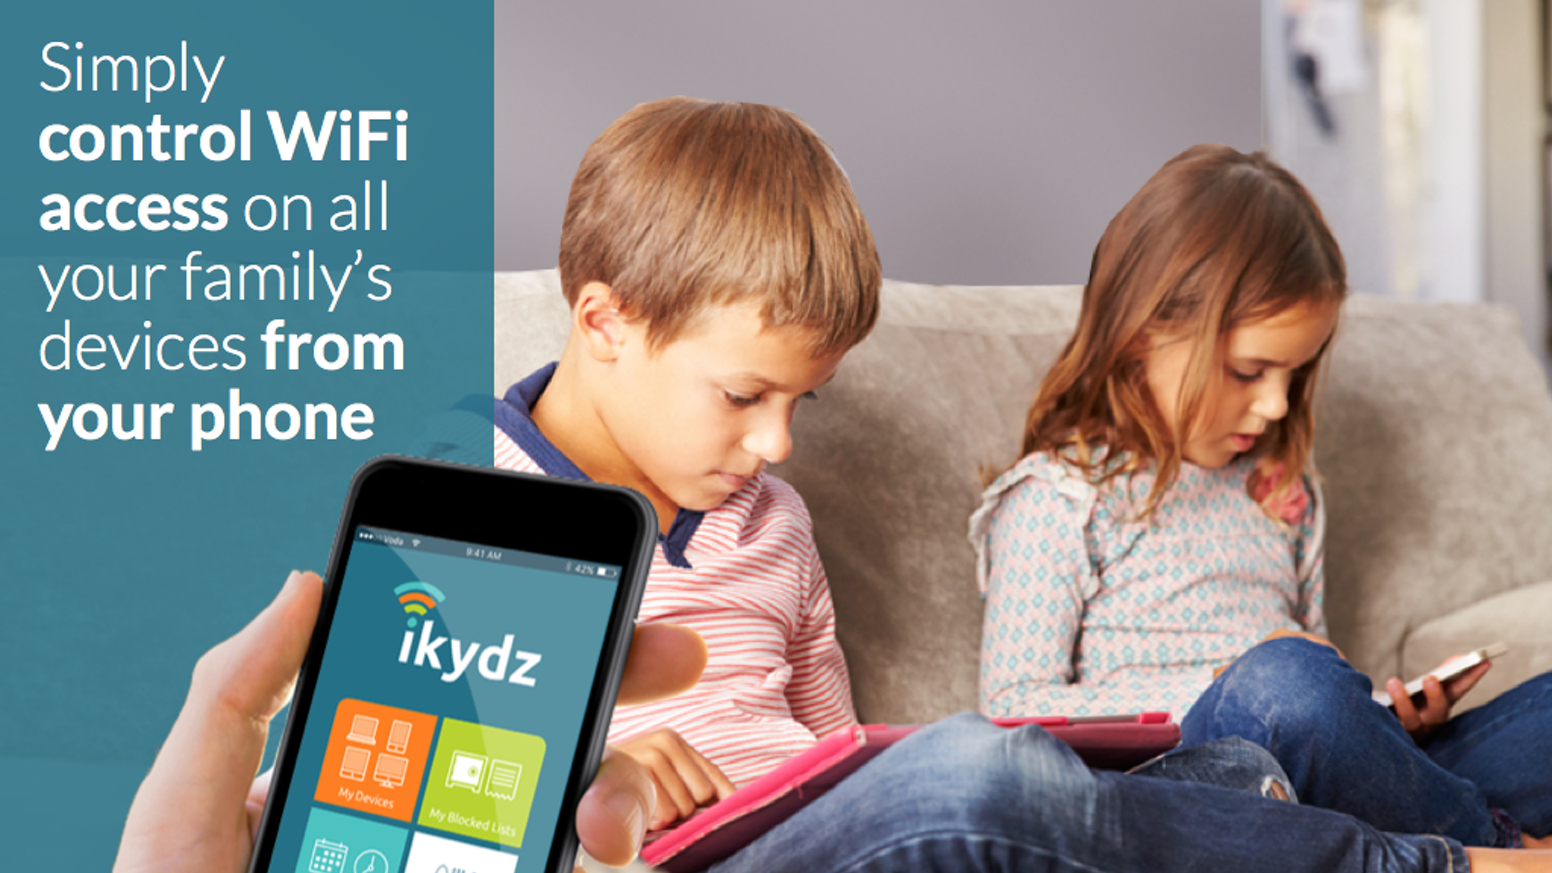 iKydz - The answer to any parents digital dilemma  by The iKydz Team